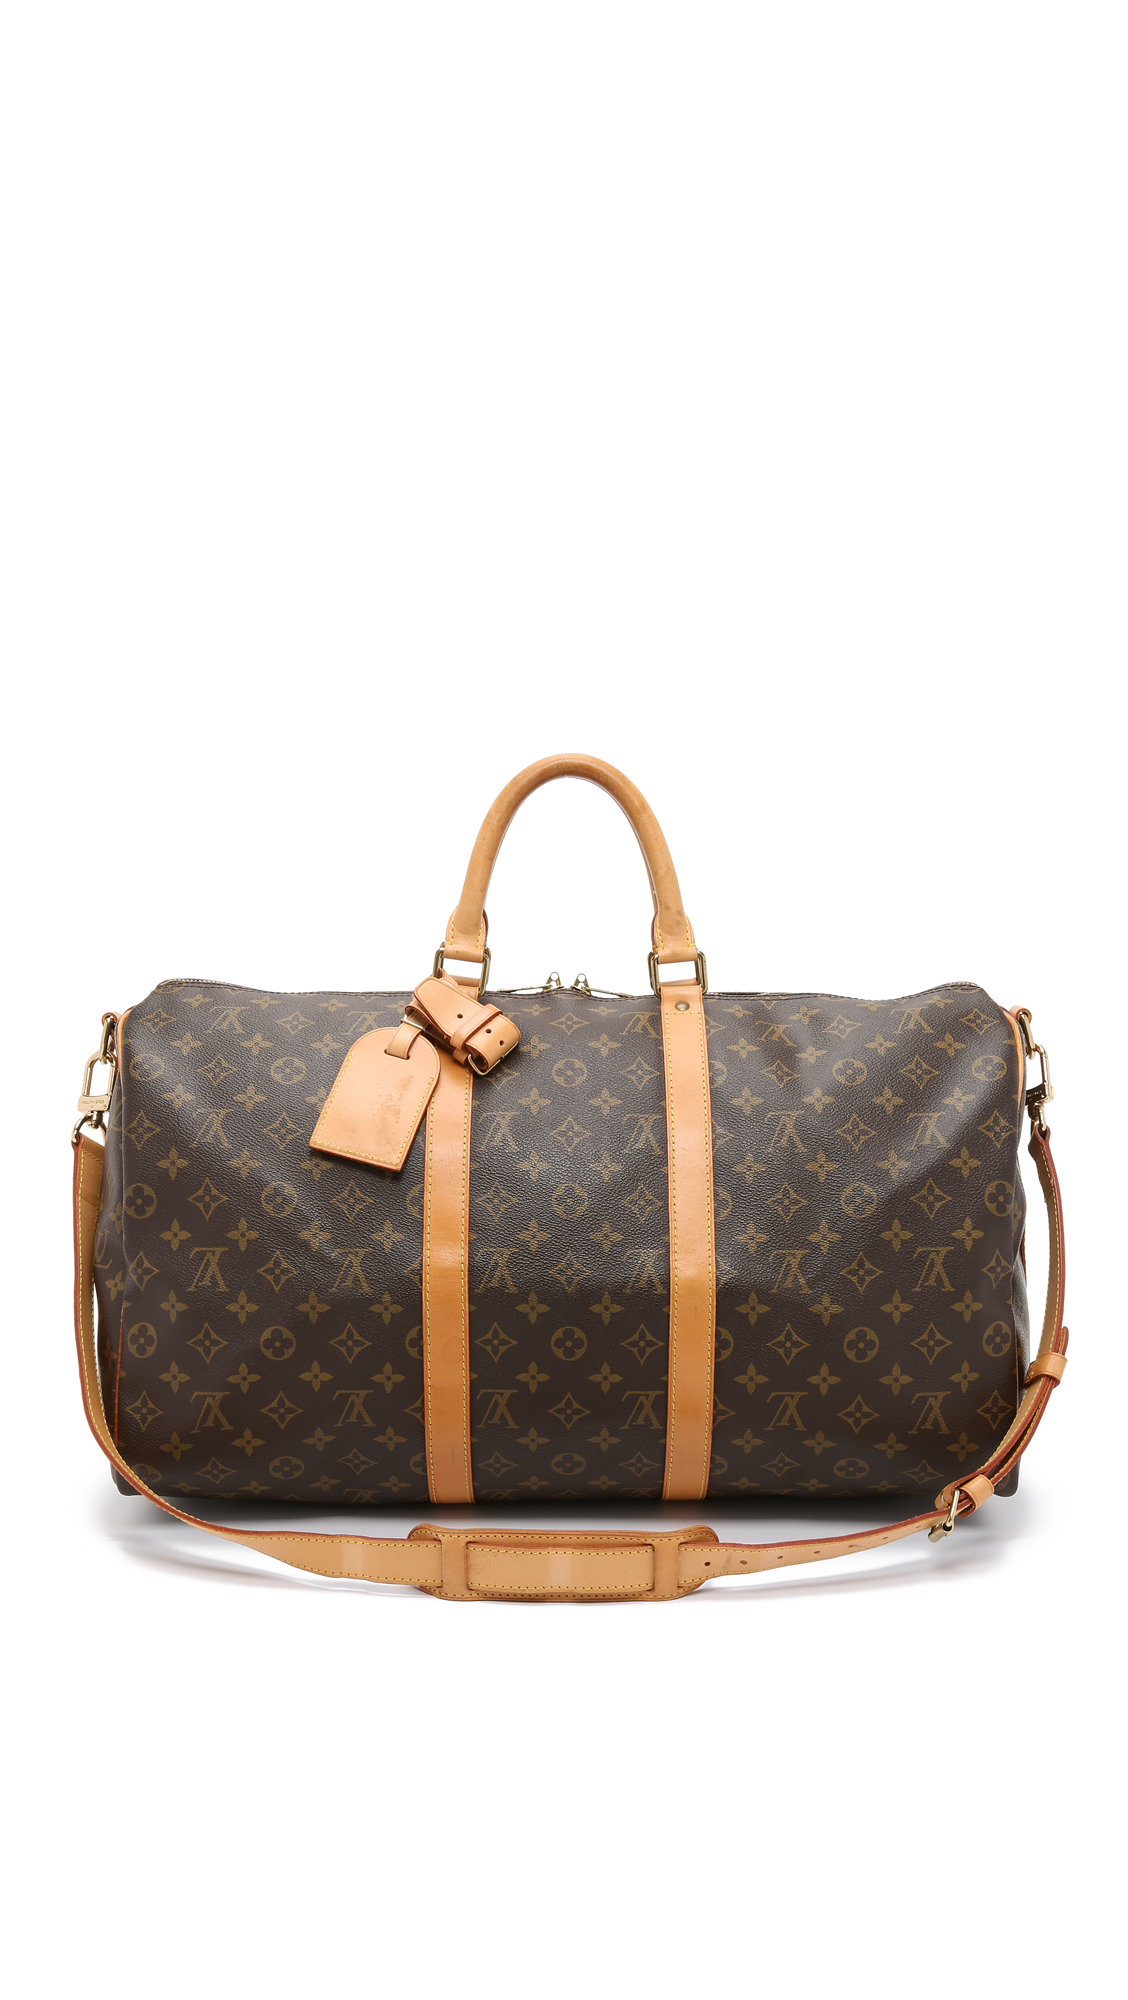 LOUIS VUITTON KEEPALL (PREVIOUSLY OWNED)